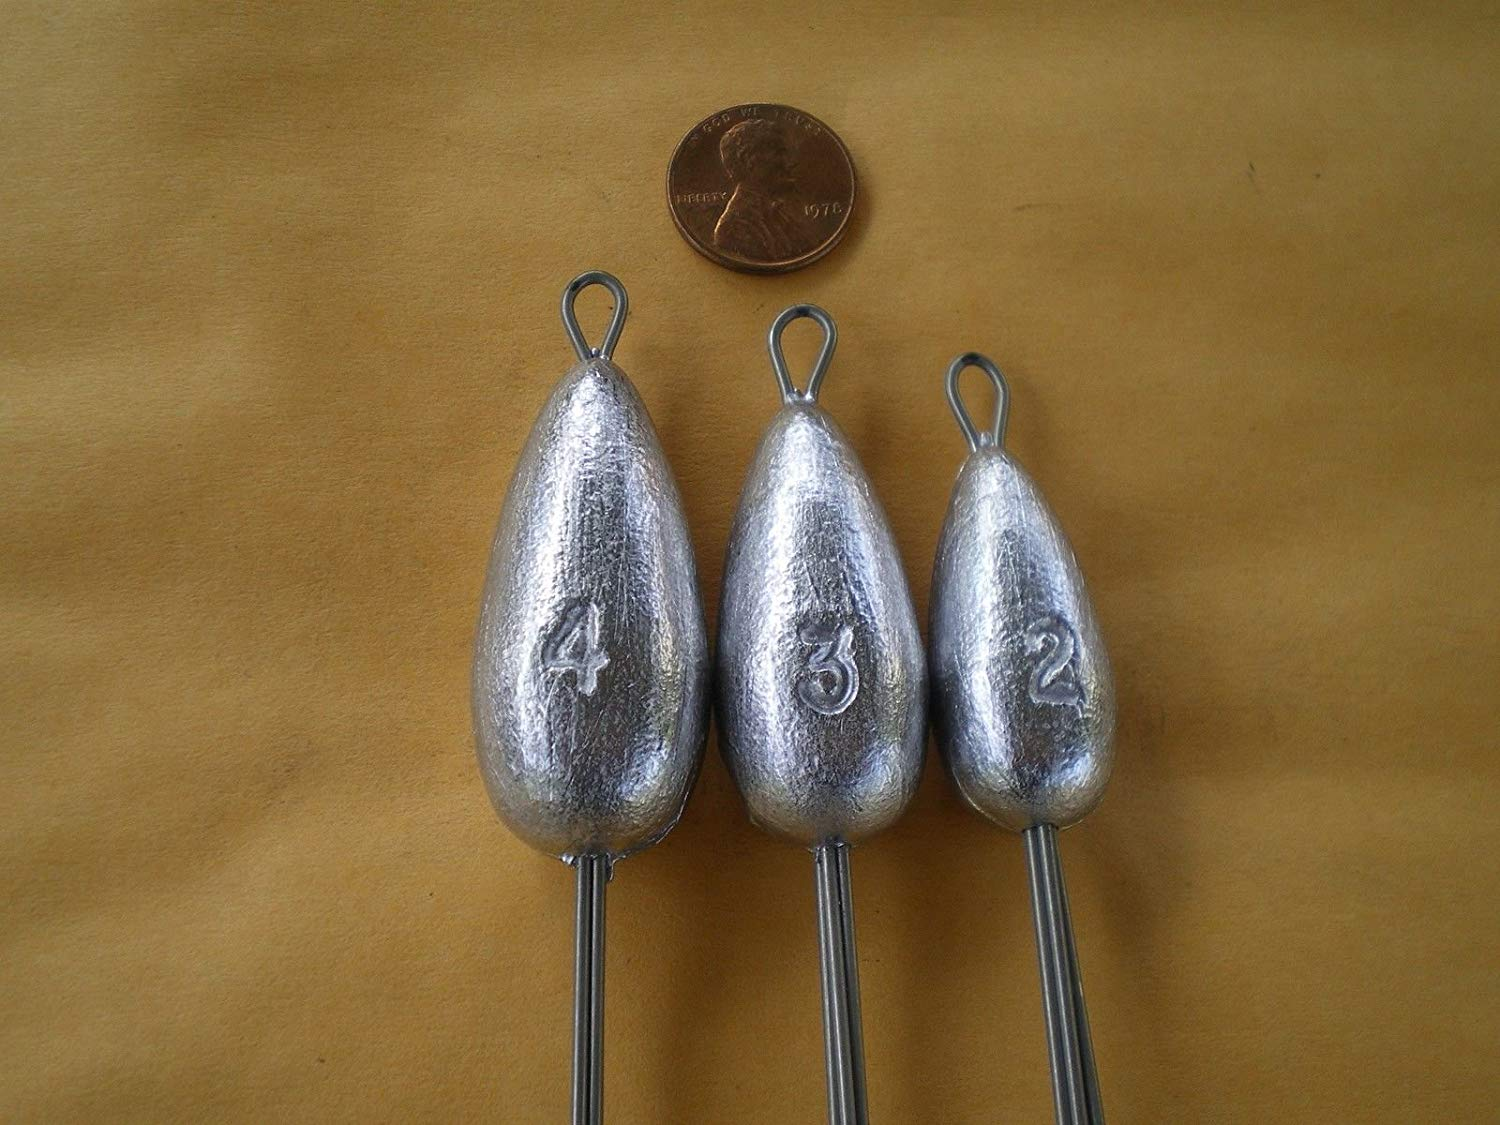 "Fishing Sport Eq. 15 PCS. SPIDER/CLAW SINKER, SURF/MUD WEIGHT - W/3"" S.S. LEGS 2, 3, 4, OZ. 5 EACH"